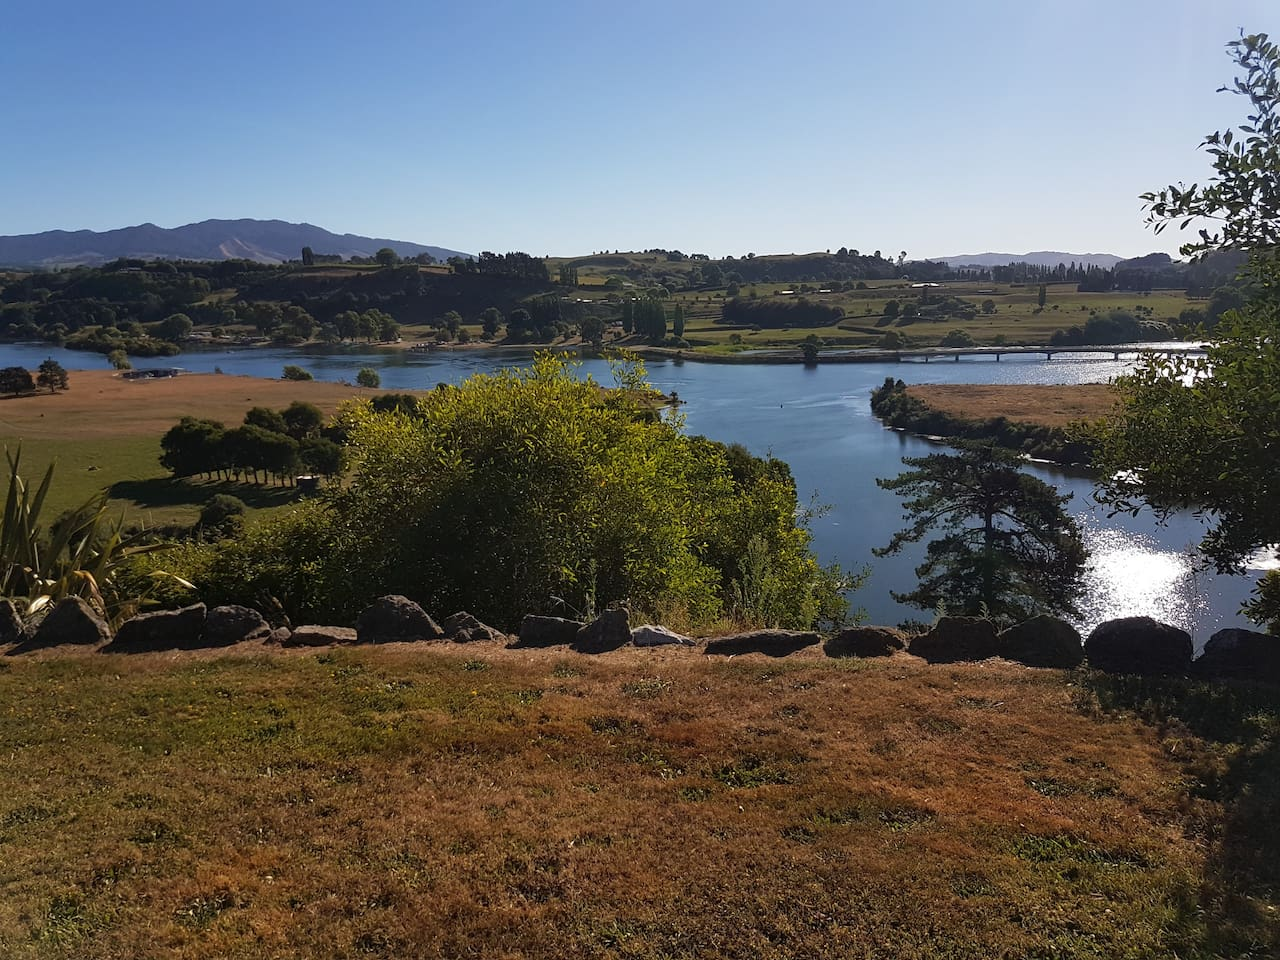 Lake Karapiro and Sanctuary Mountain view from the house and deck